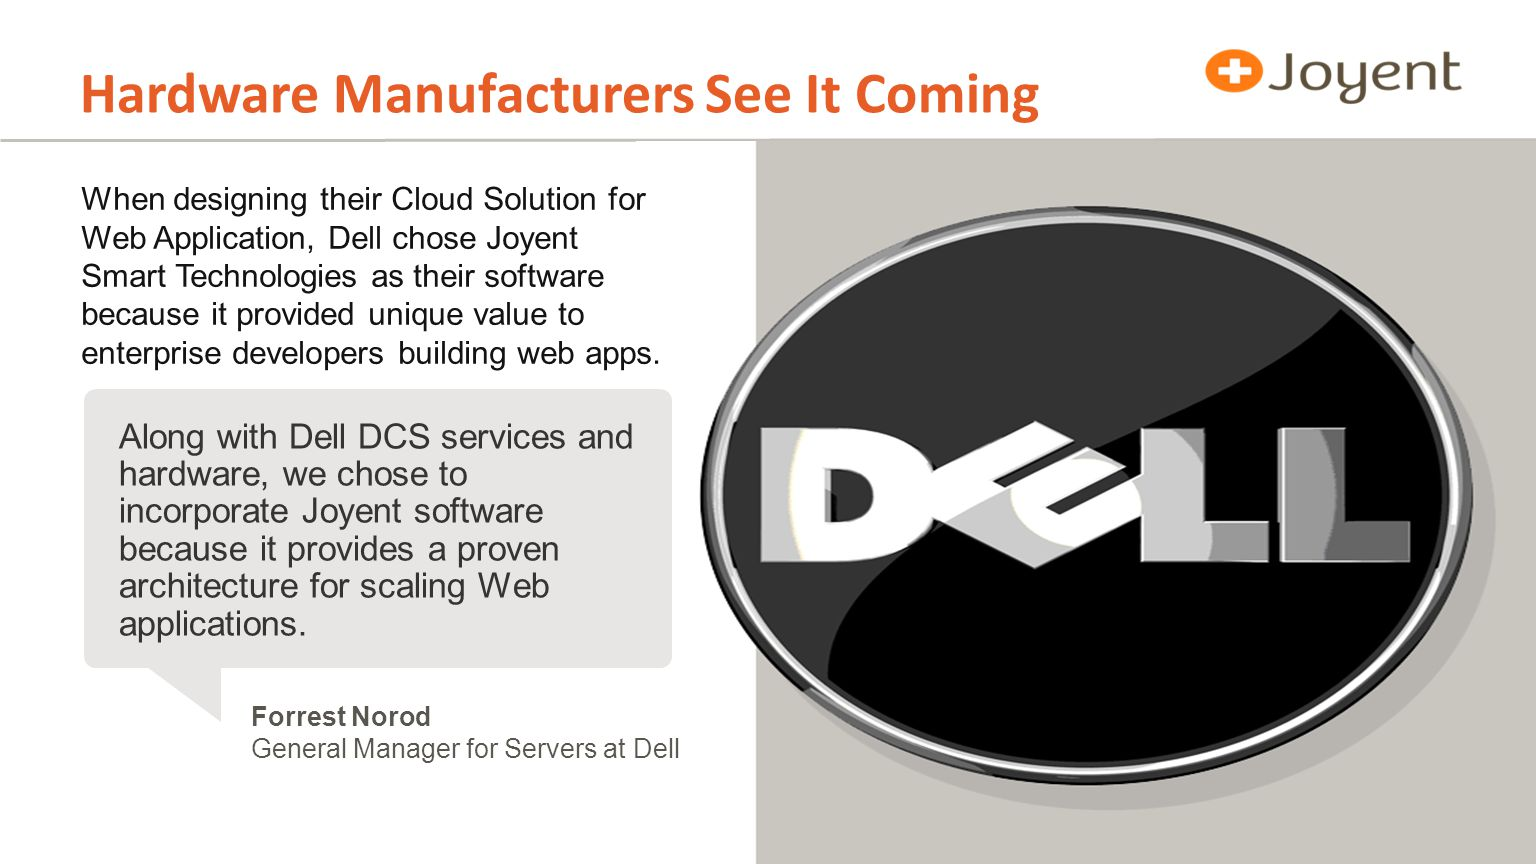 When designing their Cloud Solution for Web Application, Dell chose Joyent Smart Technologies as their software because it provided unique value to enterprise developers building web apps.